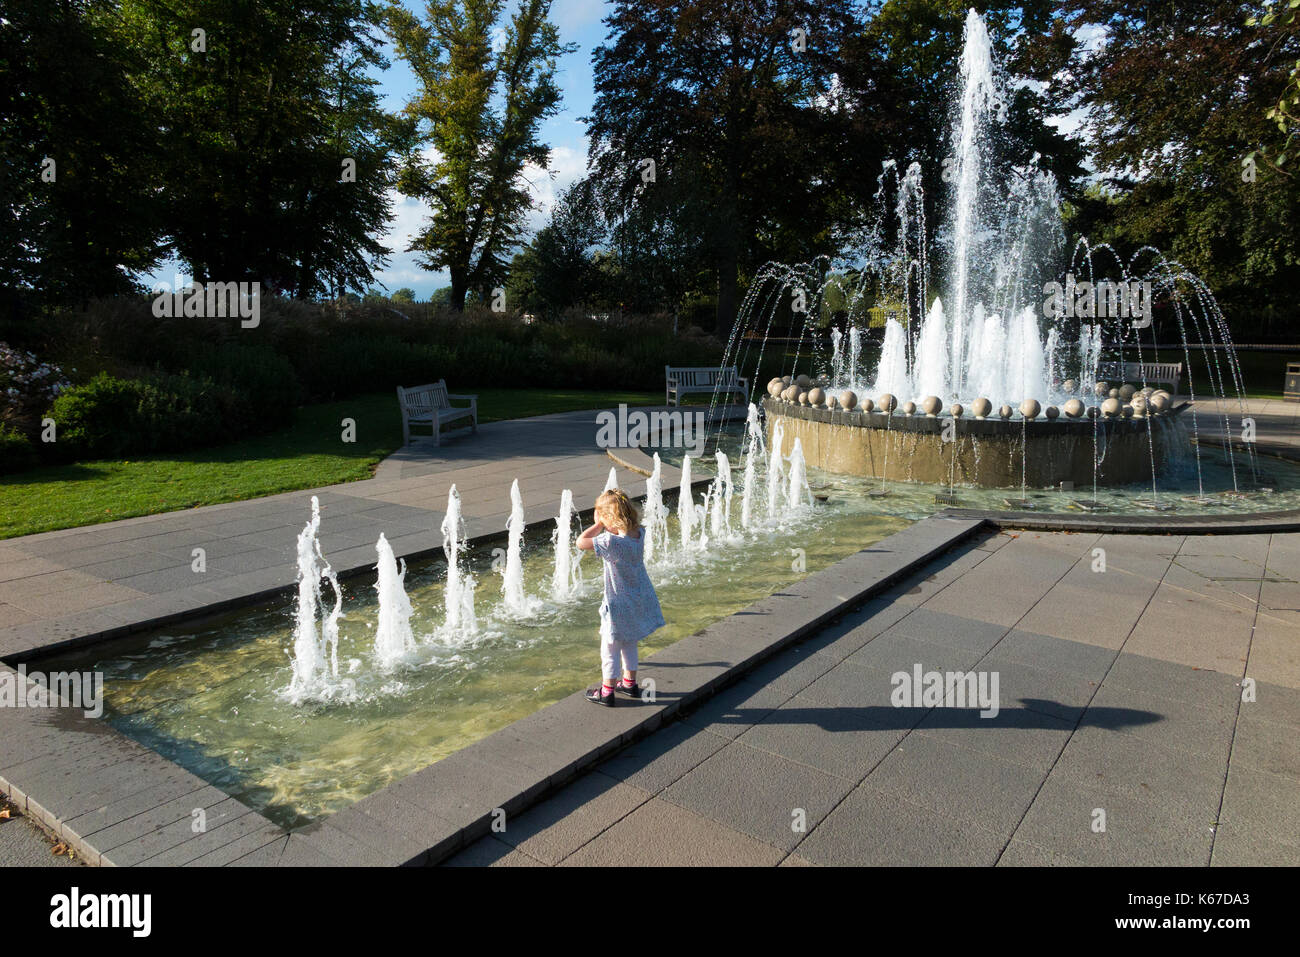 The Diamond Jubilee Fountain in Windsor, Berkshire. UK. The fountain  was commissioned to celebrate the Queens Diamond Jubilee in 2012. (90) - Stock Image